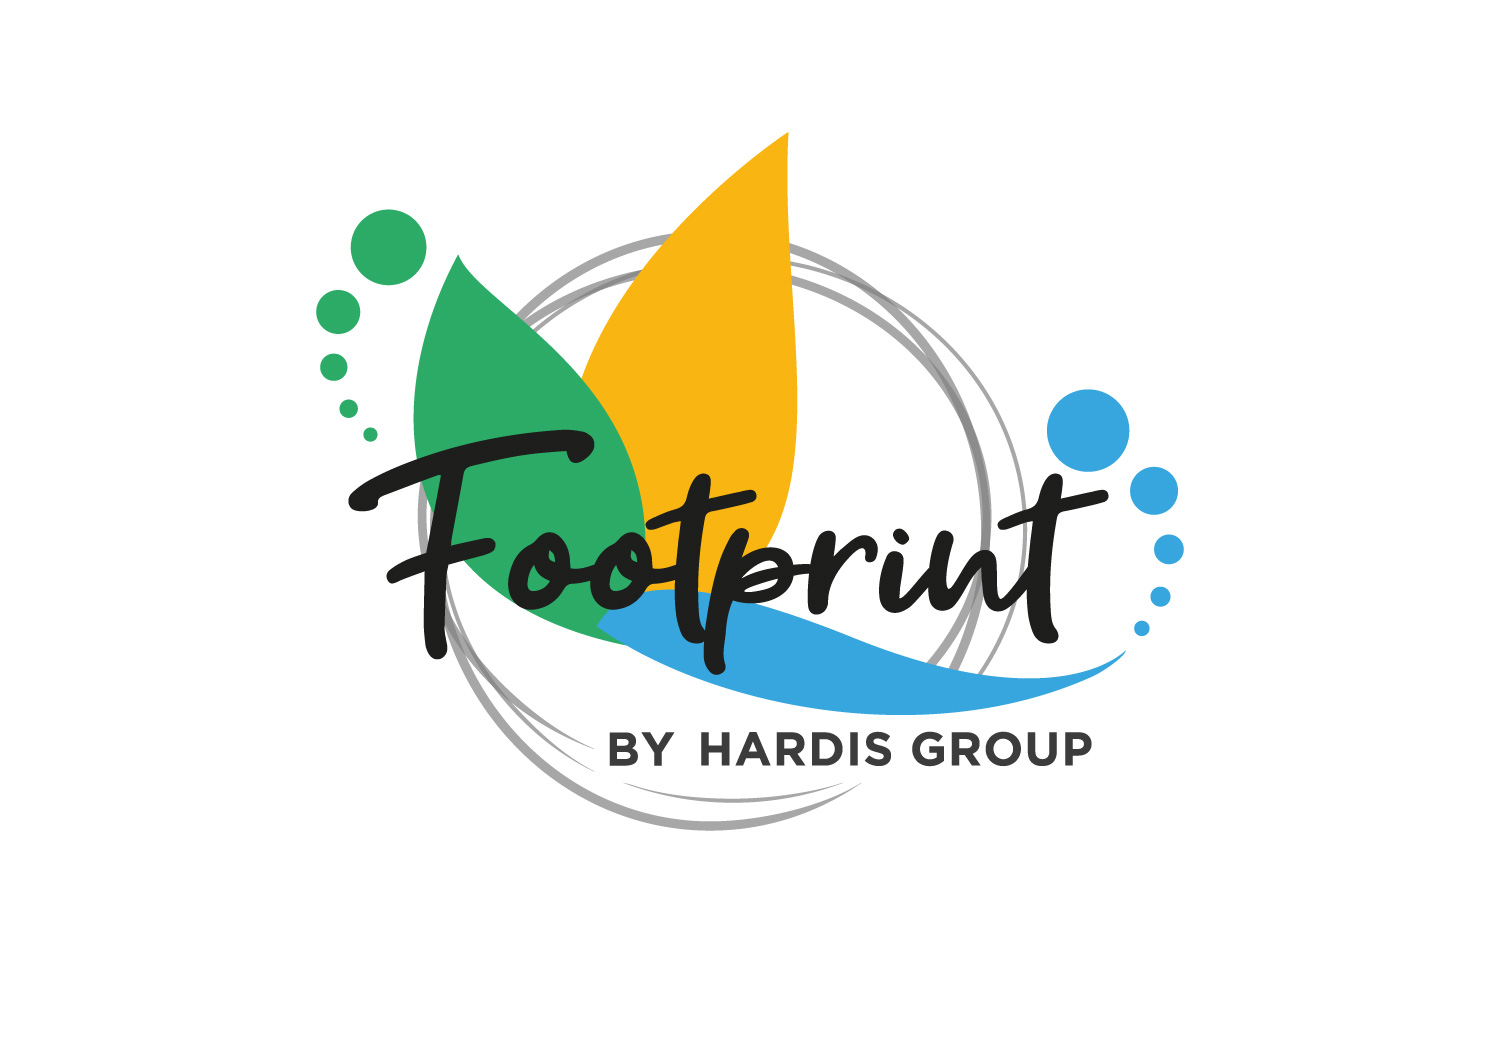 Logo Footprint